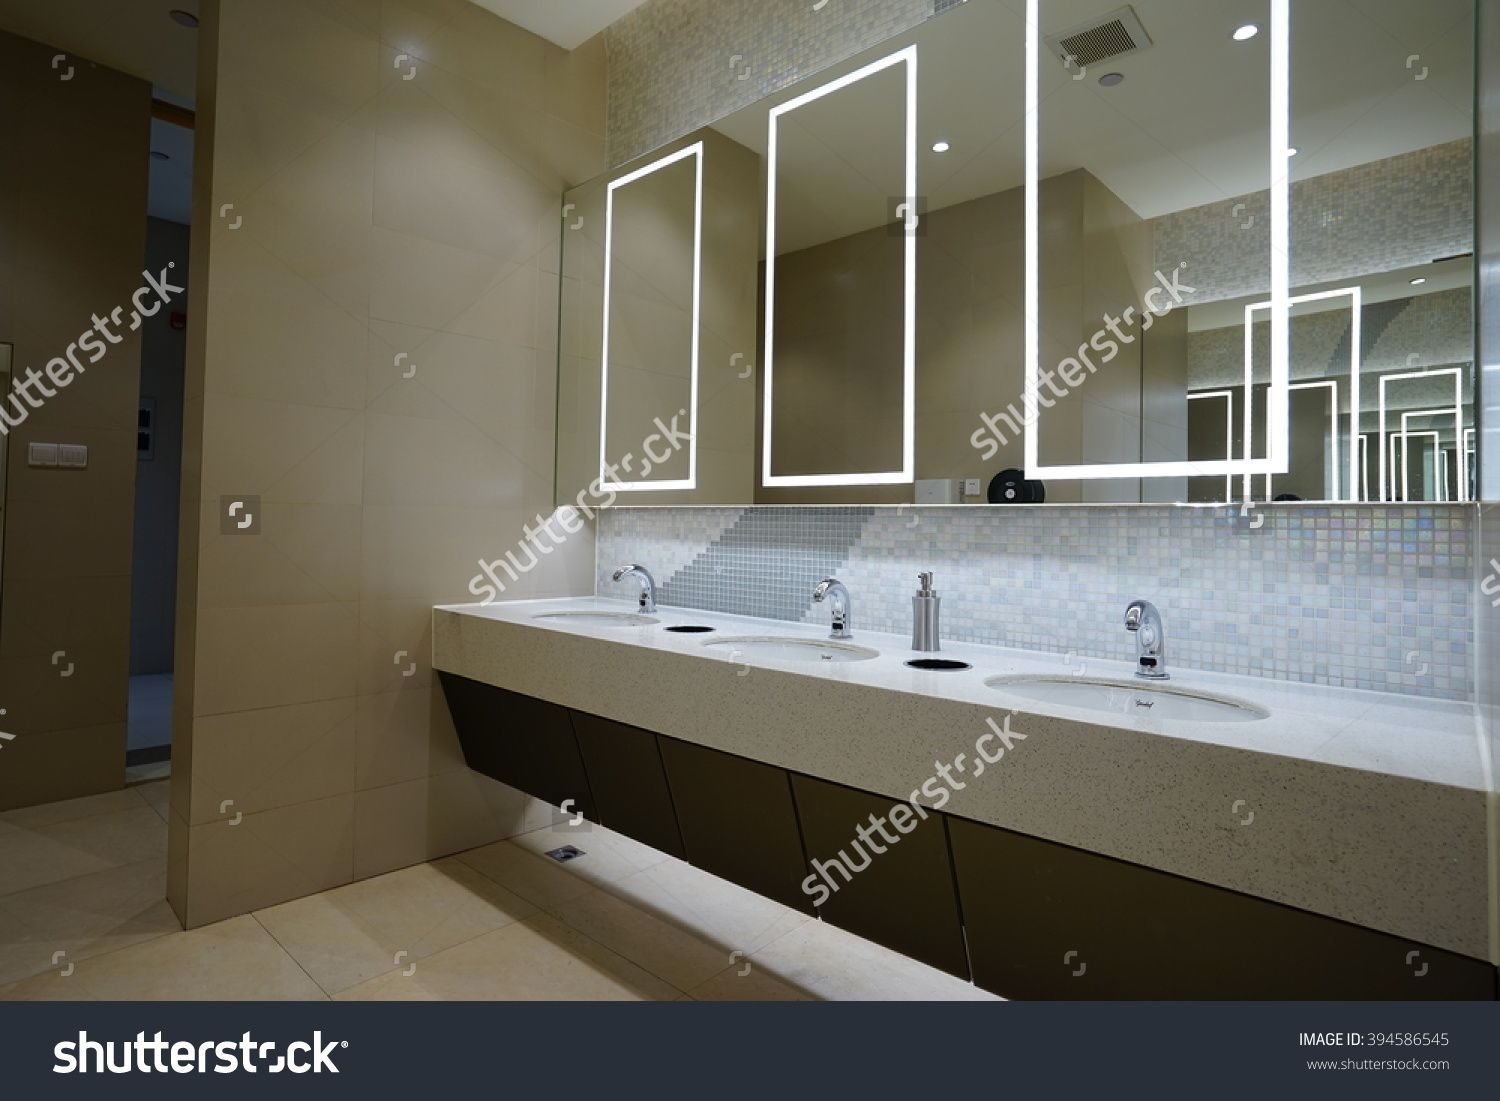 Shopping Mall Restroom Google Restroom Pinterest Toilet Powder Room And Room